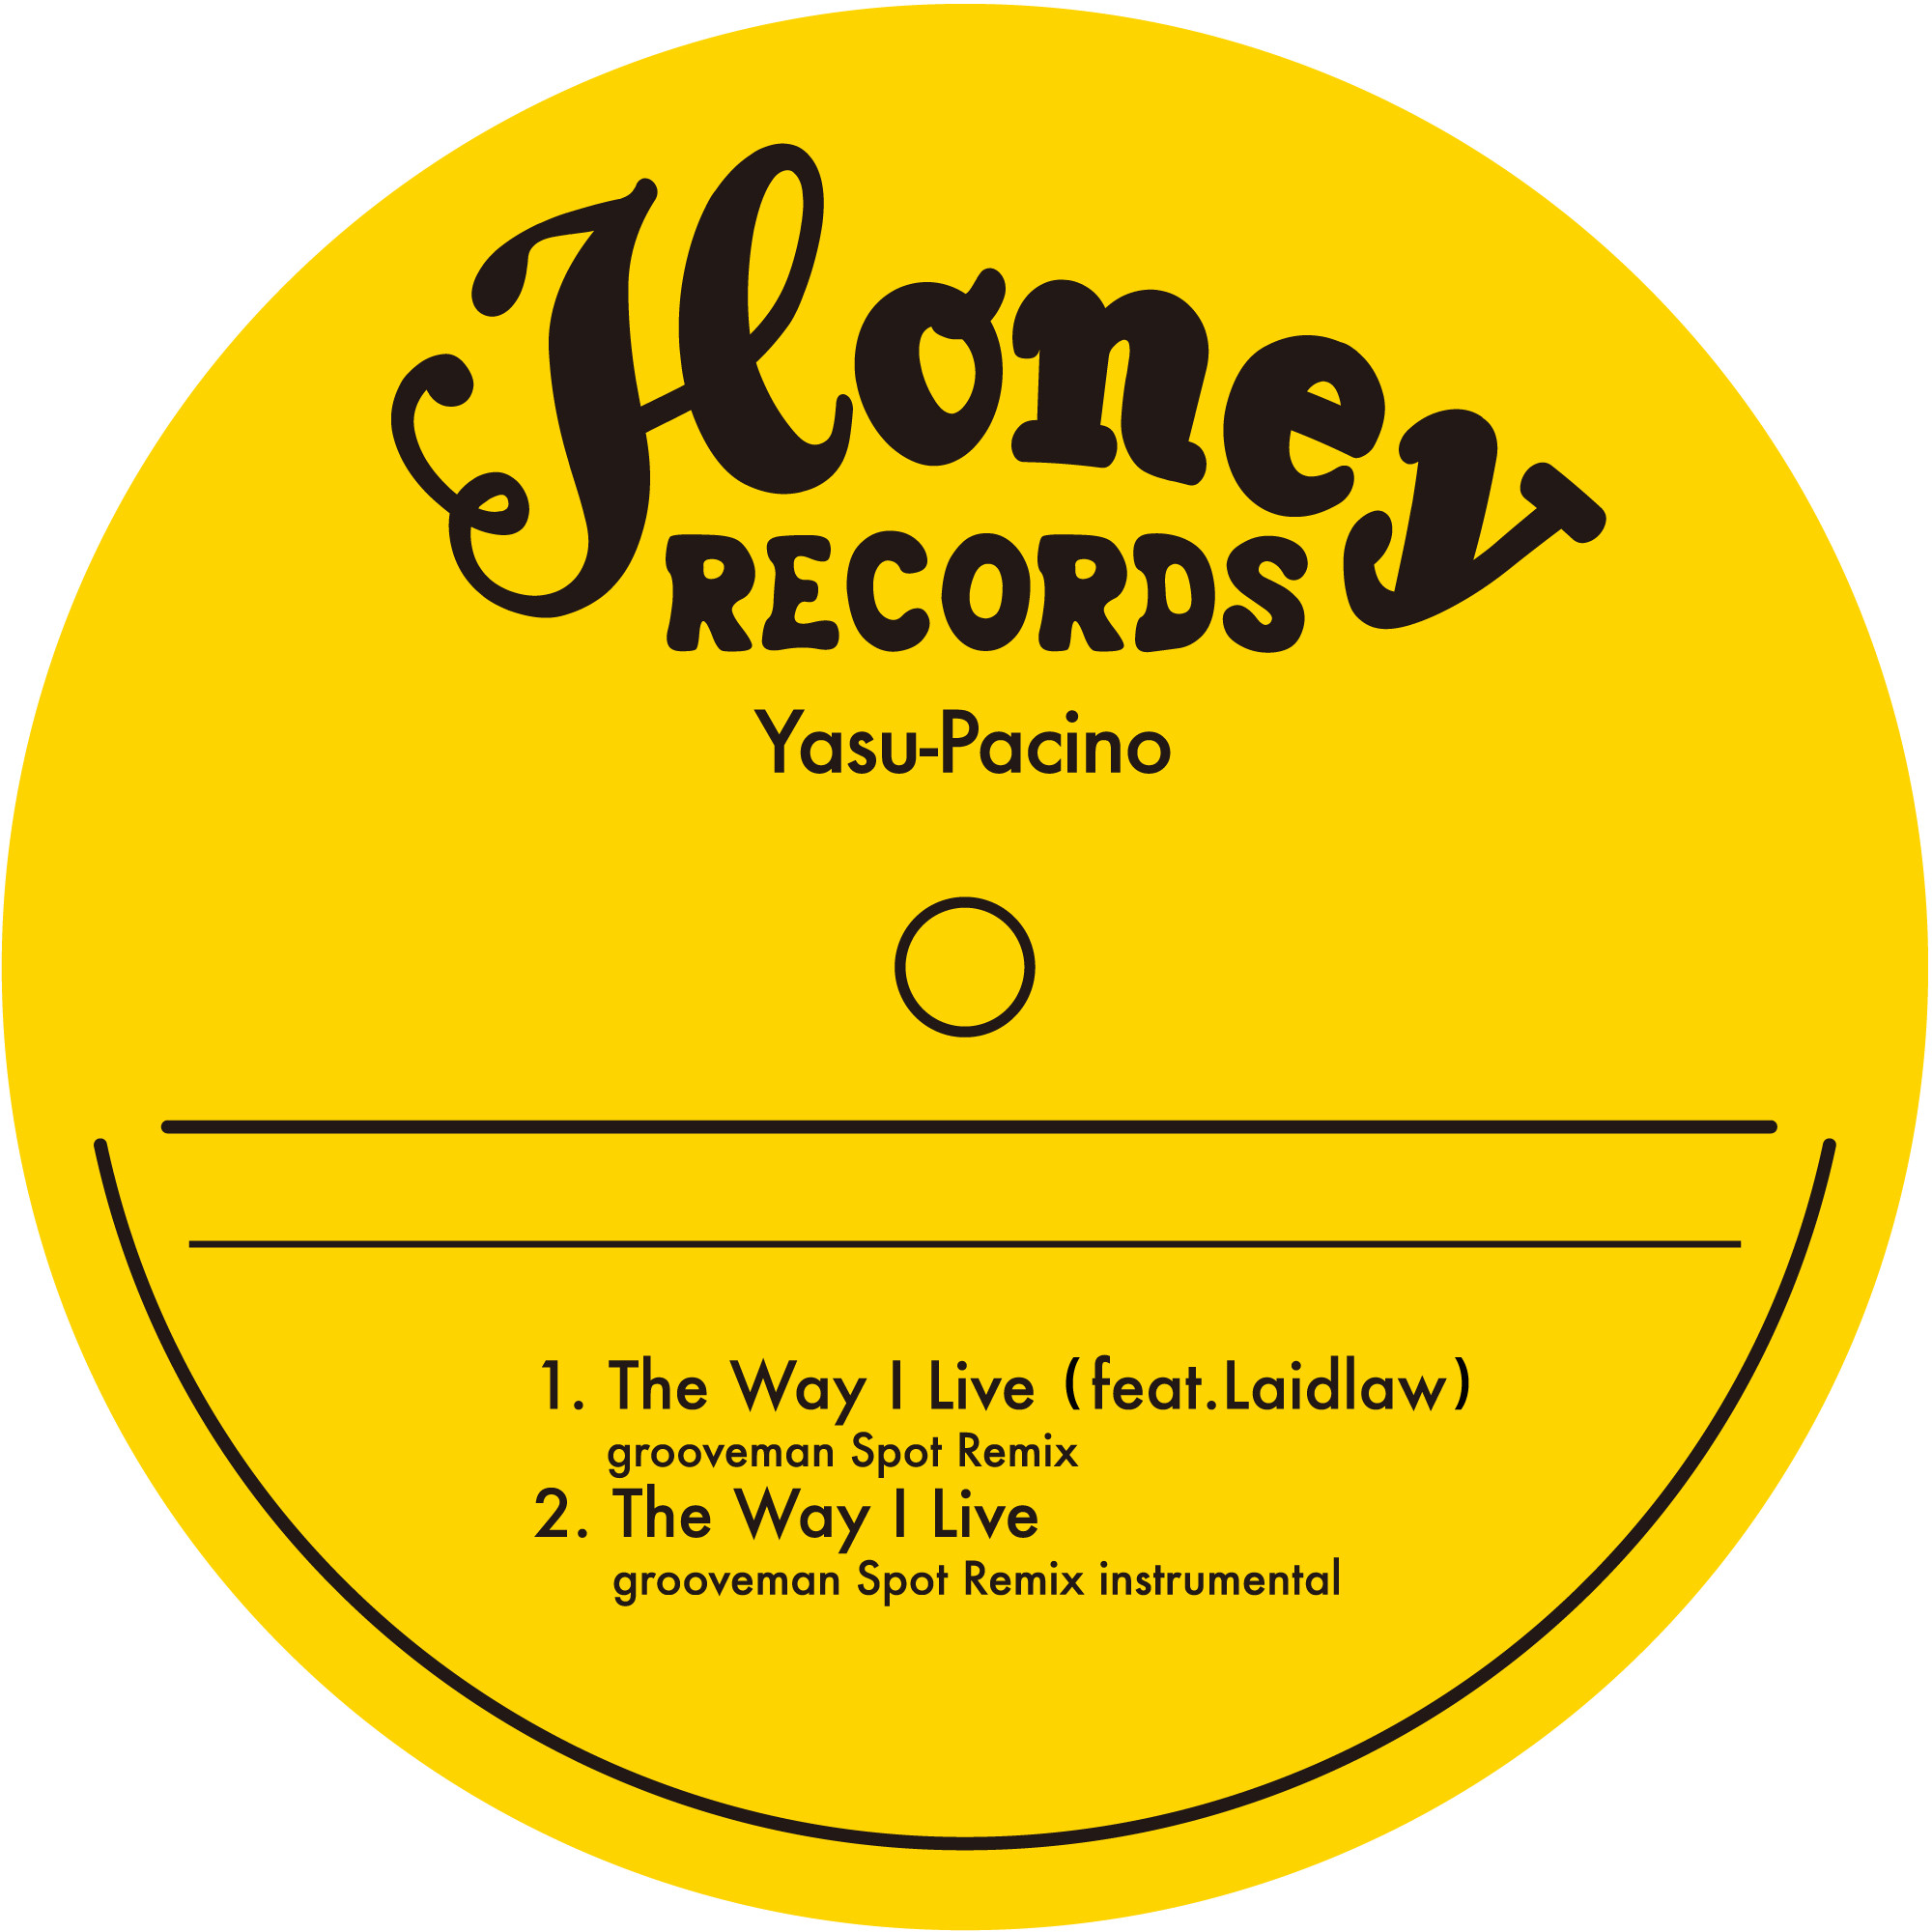 """The Way I Live  grooveman Spot remix""のストリーミング配信開始"